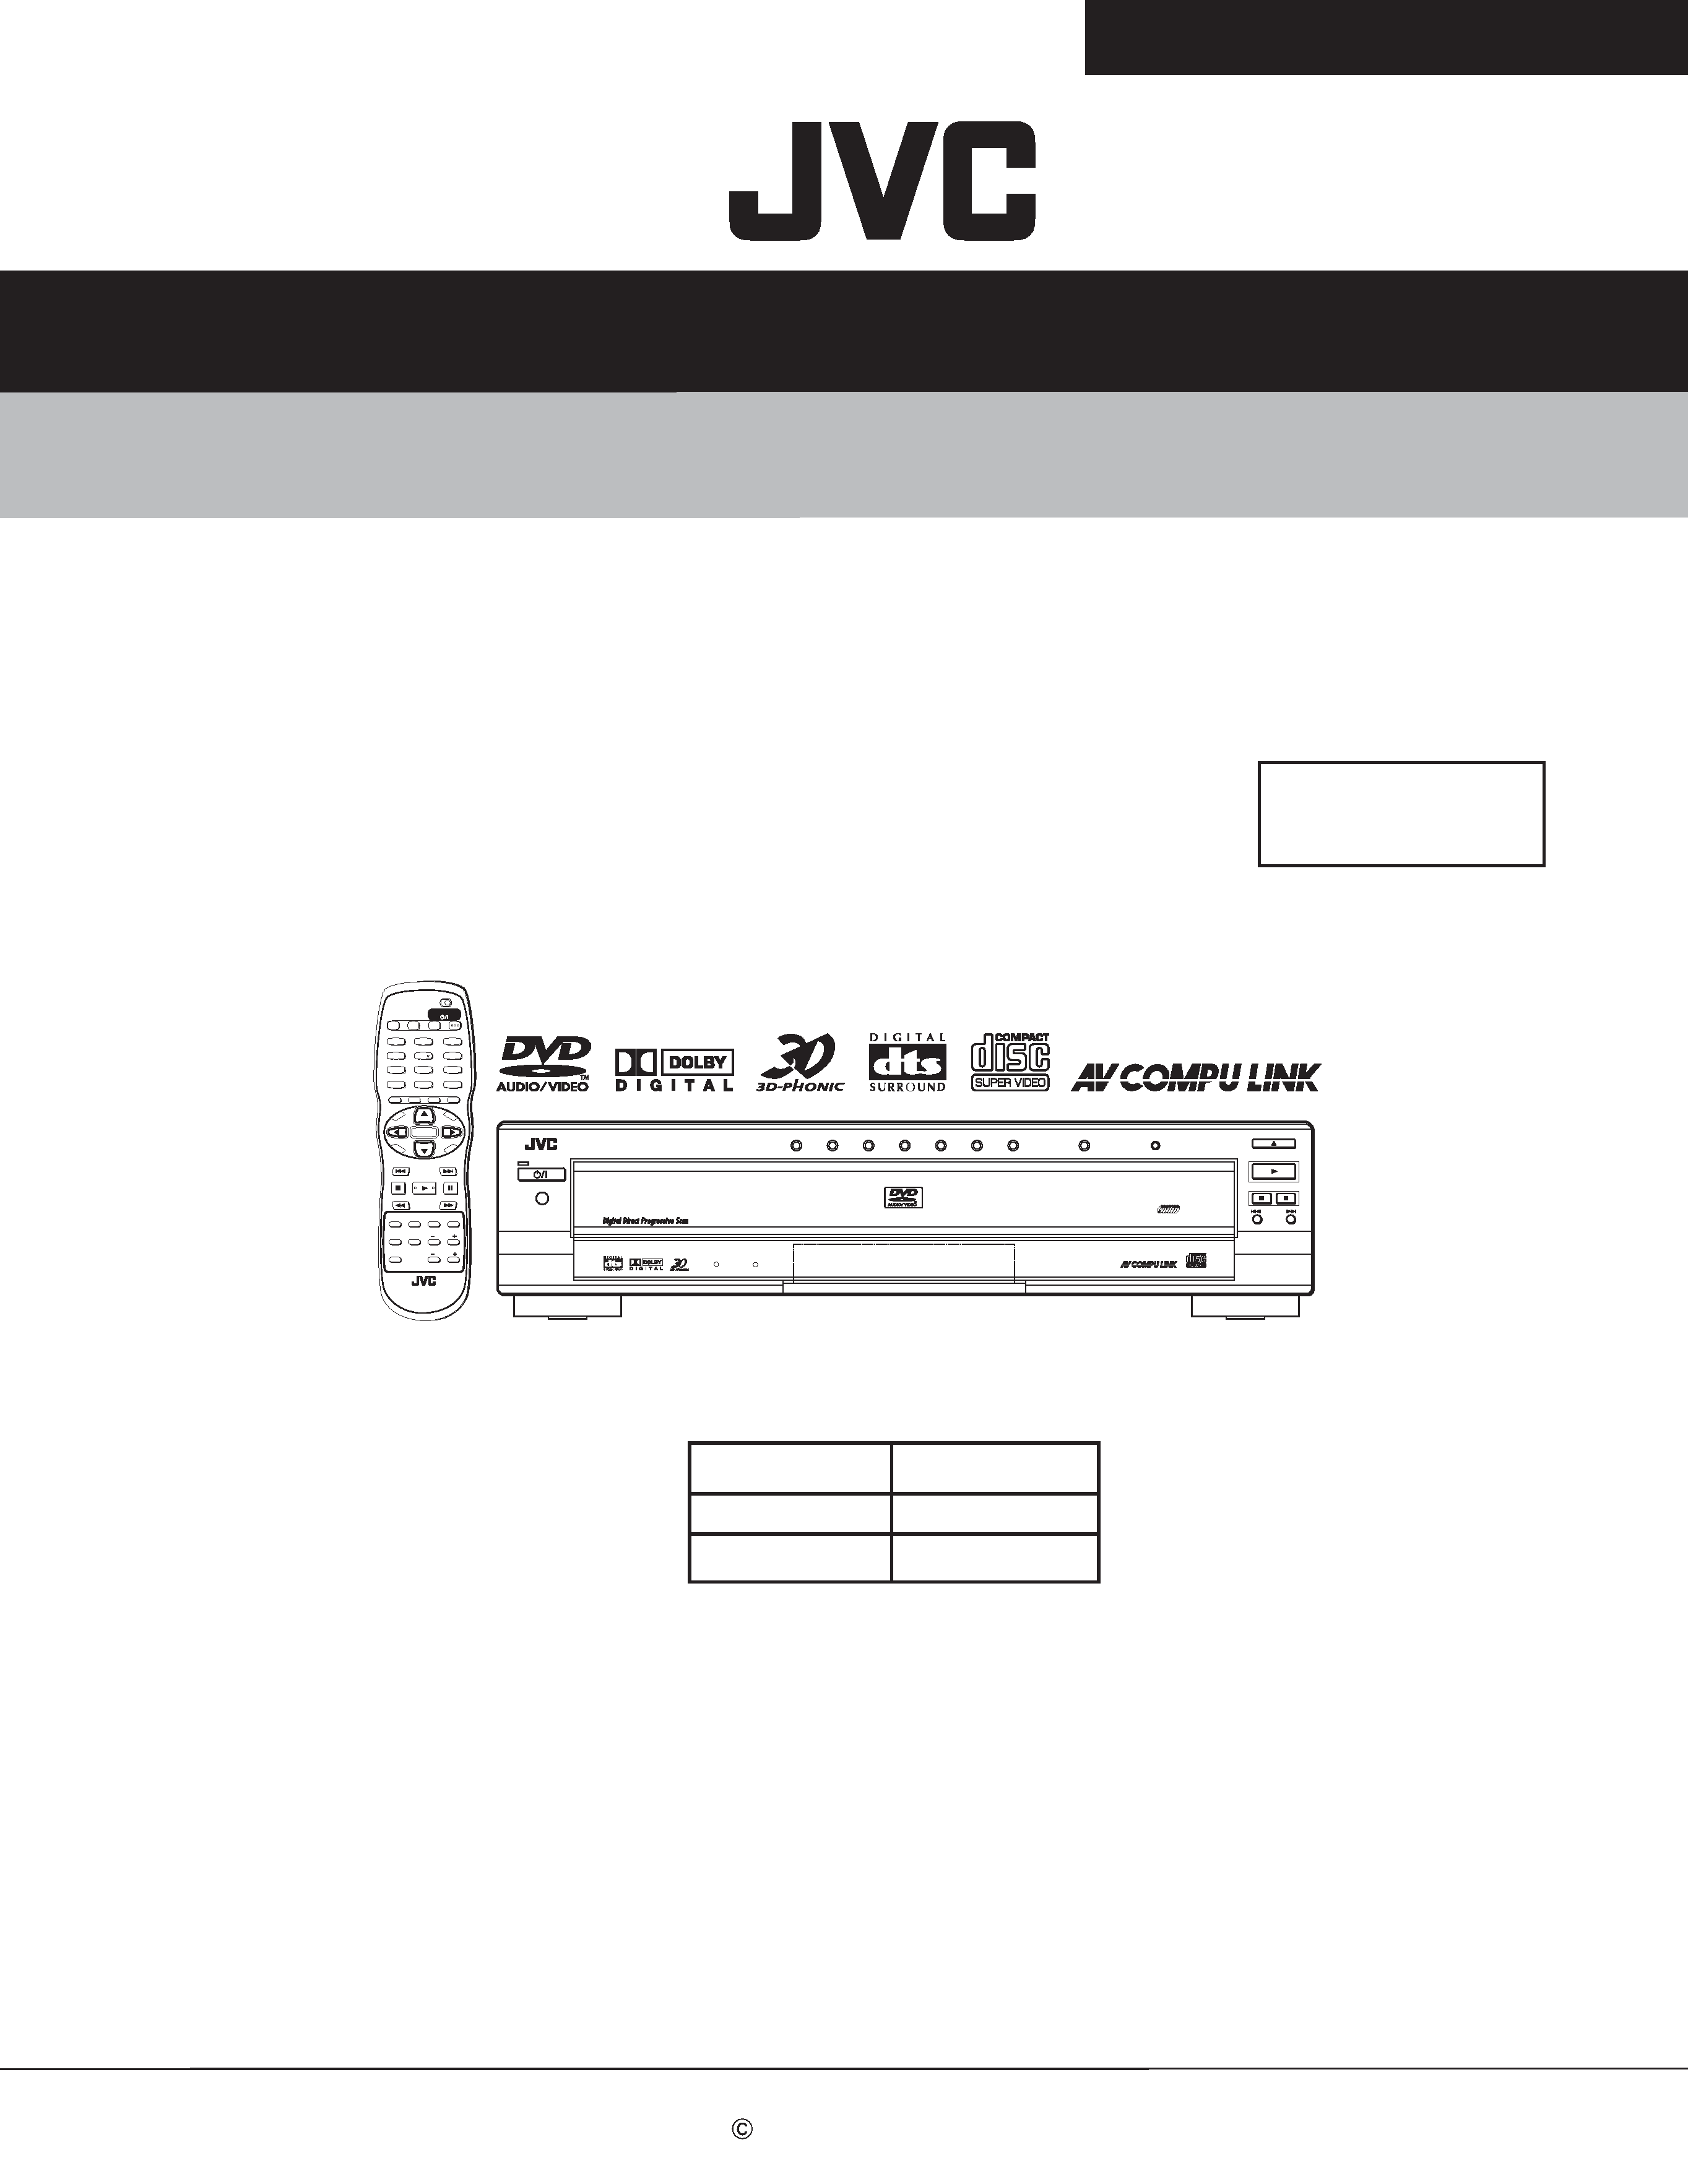 background image. SERVICE MANUAL. DVD AUDIO/VIDEO PLAYER